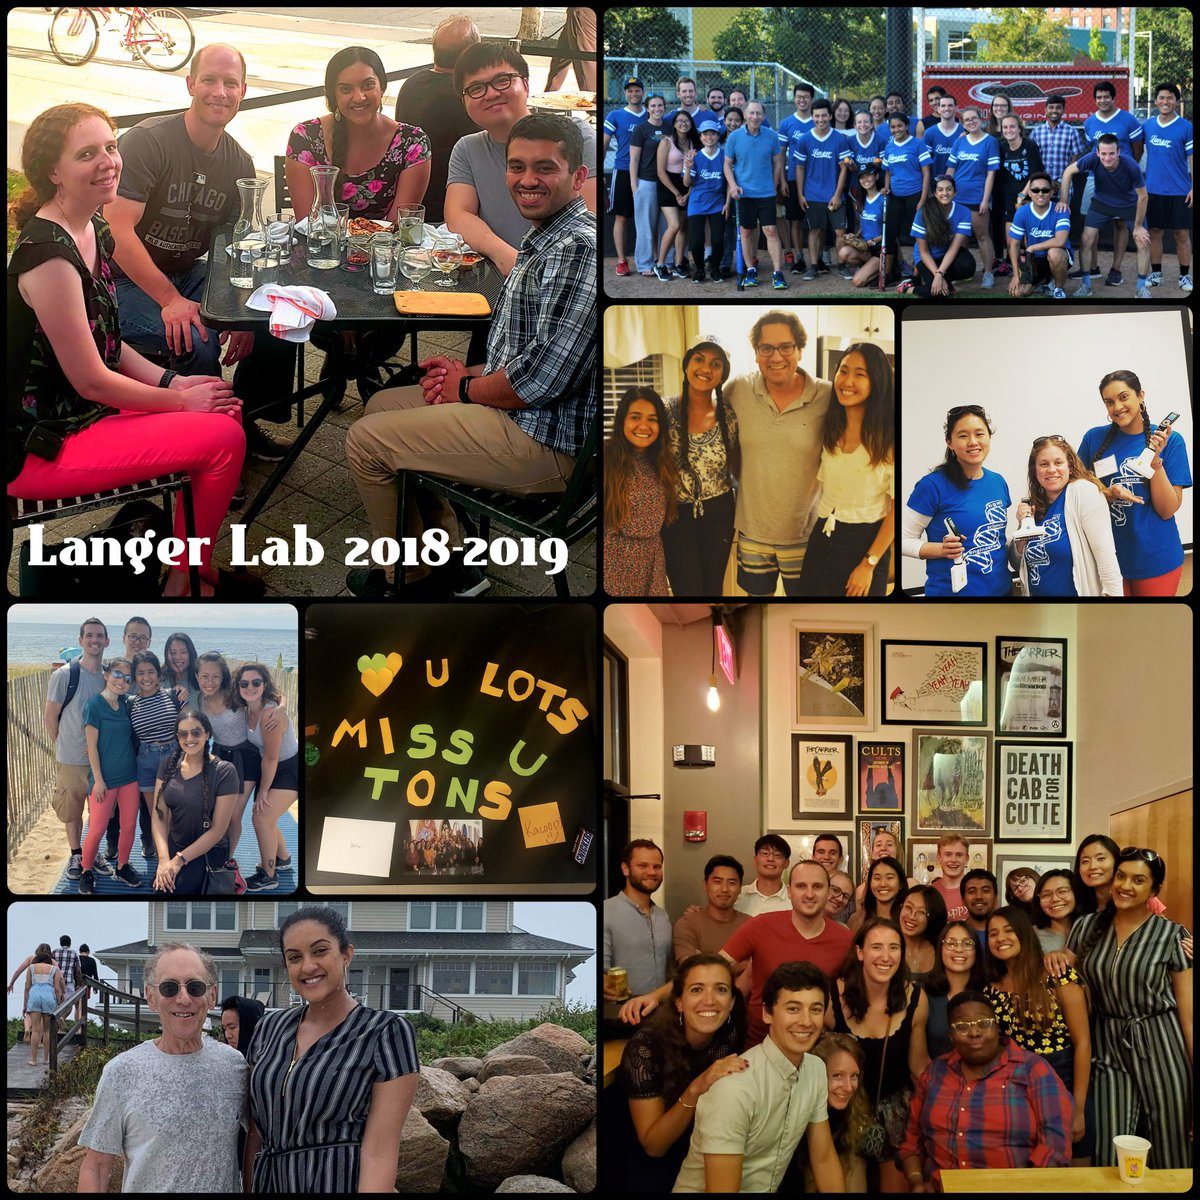 The end of an amazing chapter..I really enjoyed my year-long tenure at the #langerlab @MIT! Thank you to all the amazing mentors at the @kochinstitute for giving me this wonderful opportunity & teaching me along the way - I hope to one day be an amazing leader like you all!<br>http://pic.twitter.com/qV0x0mWNh2